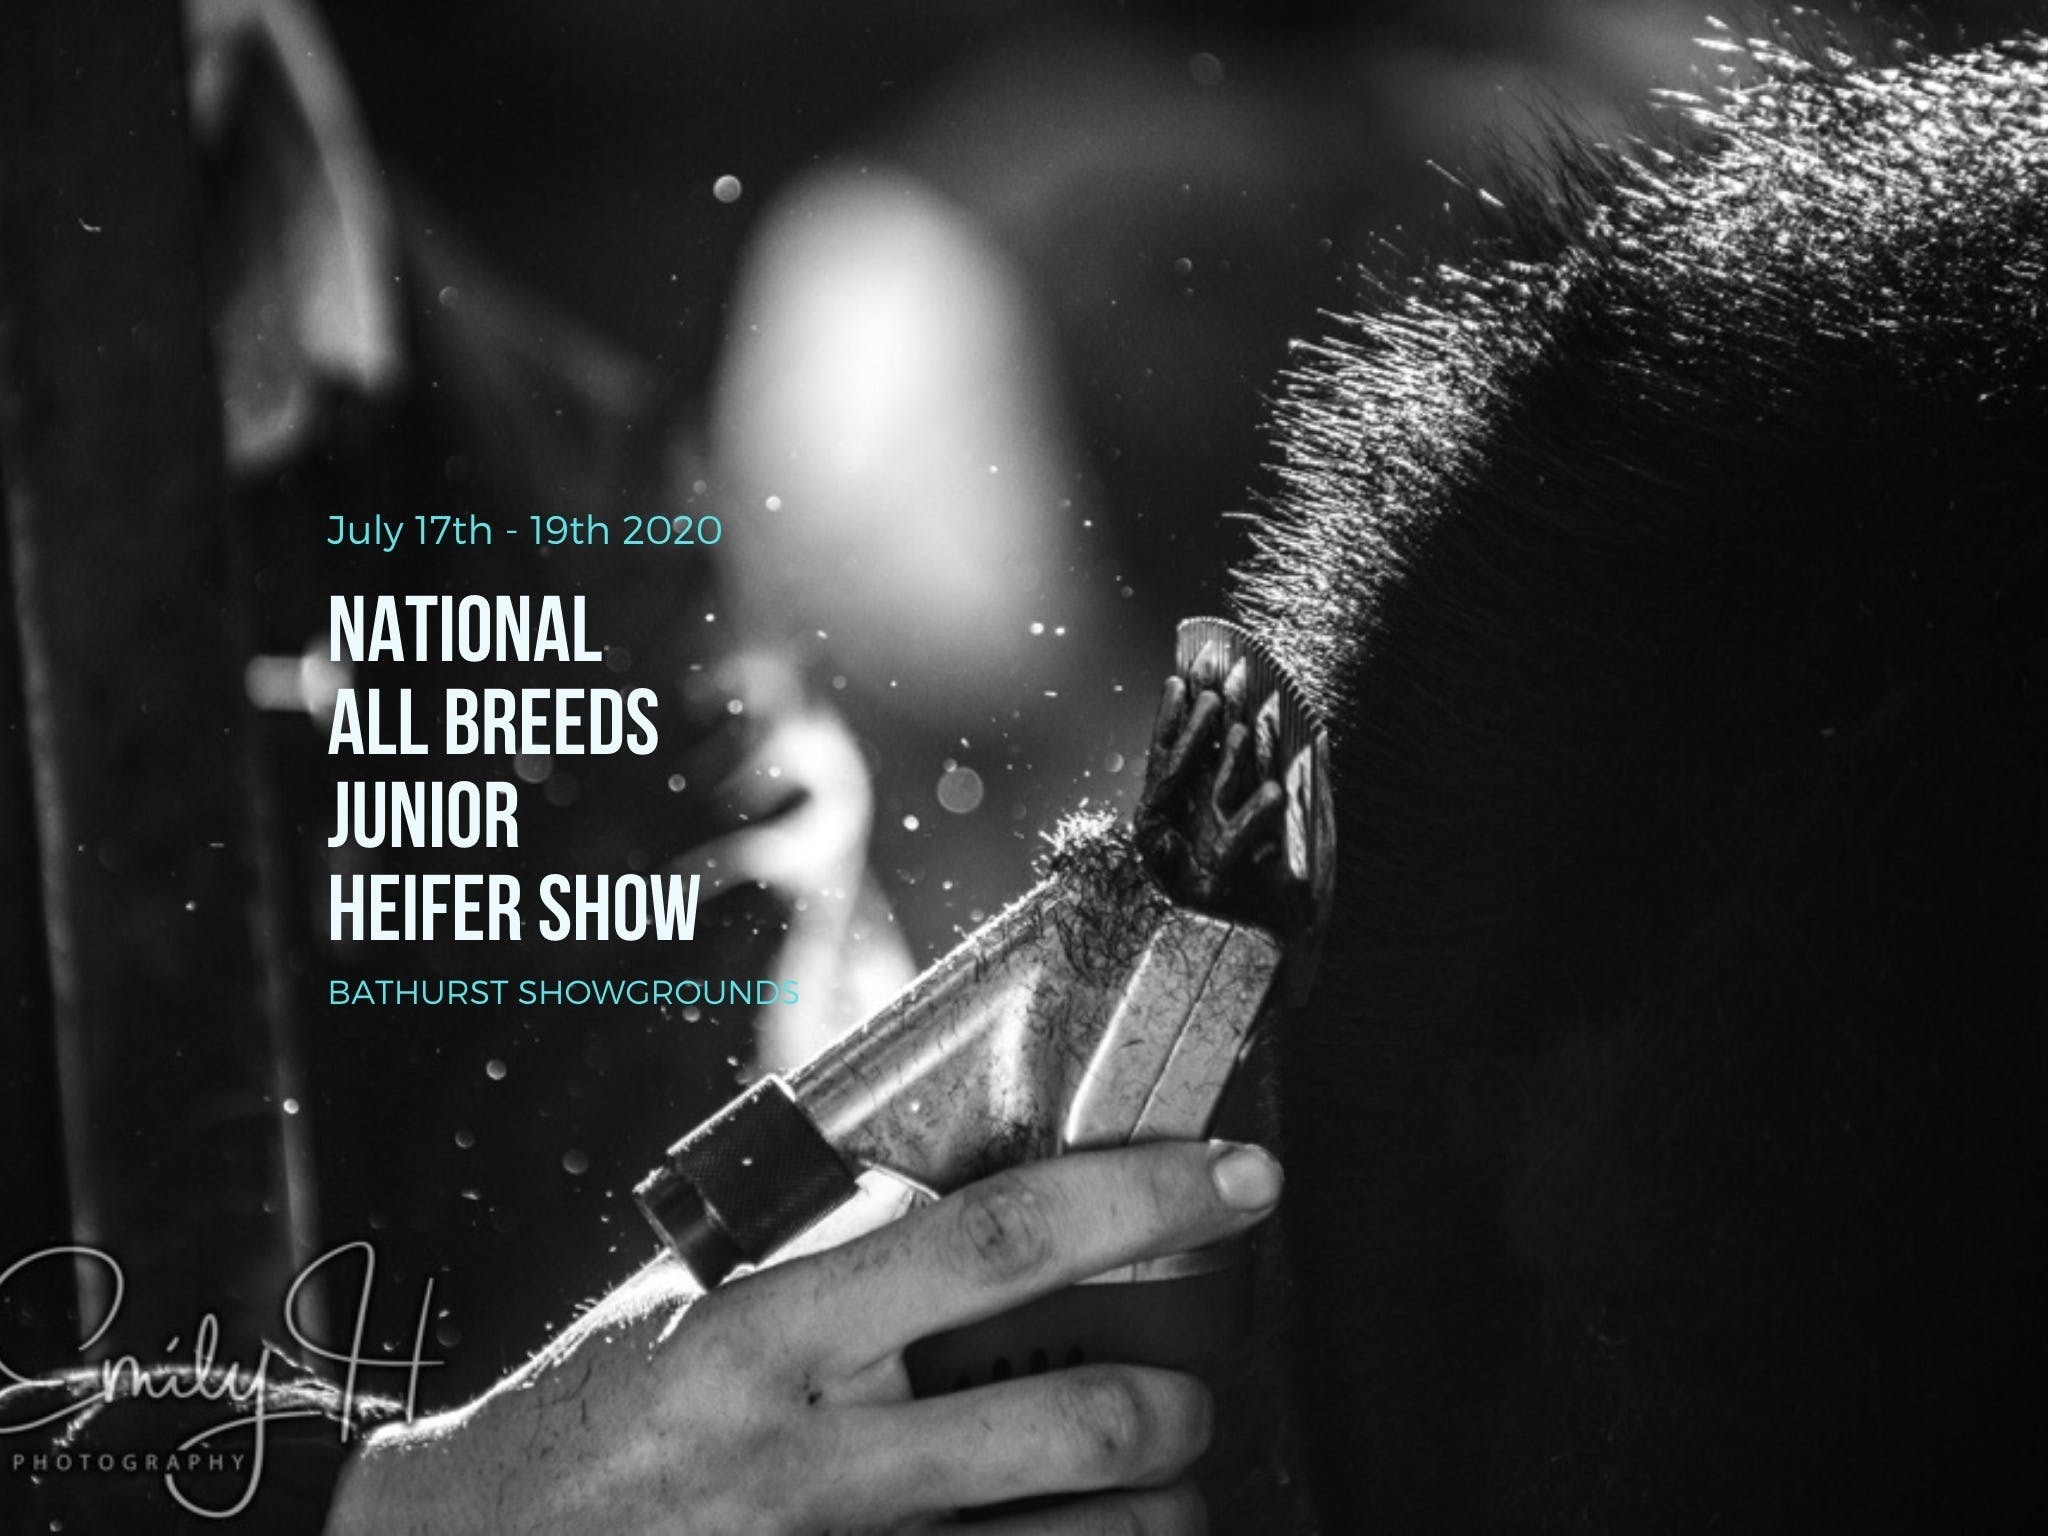 National All Breeds Junior Heifer Show - Pubs and Clubs